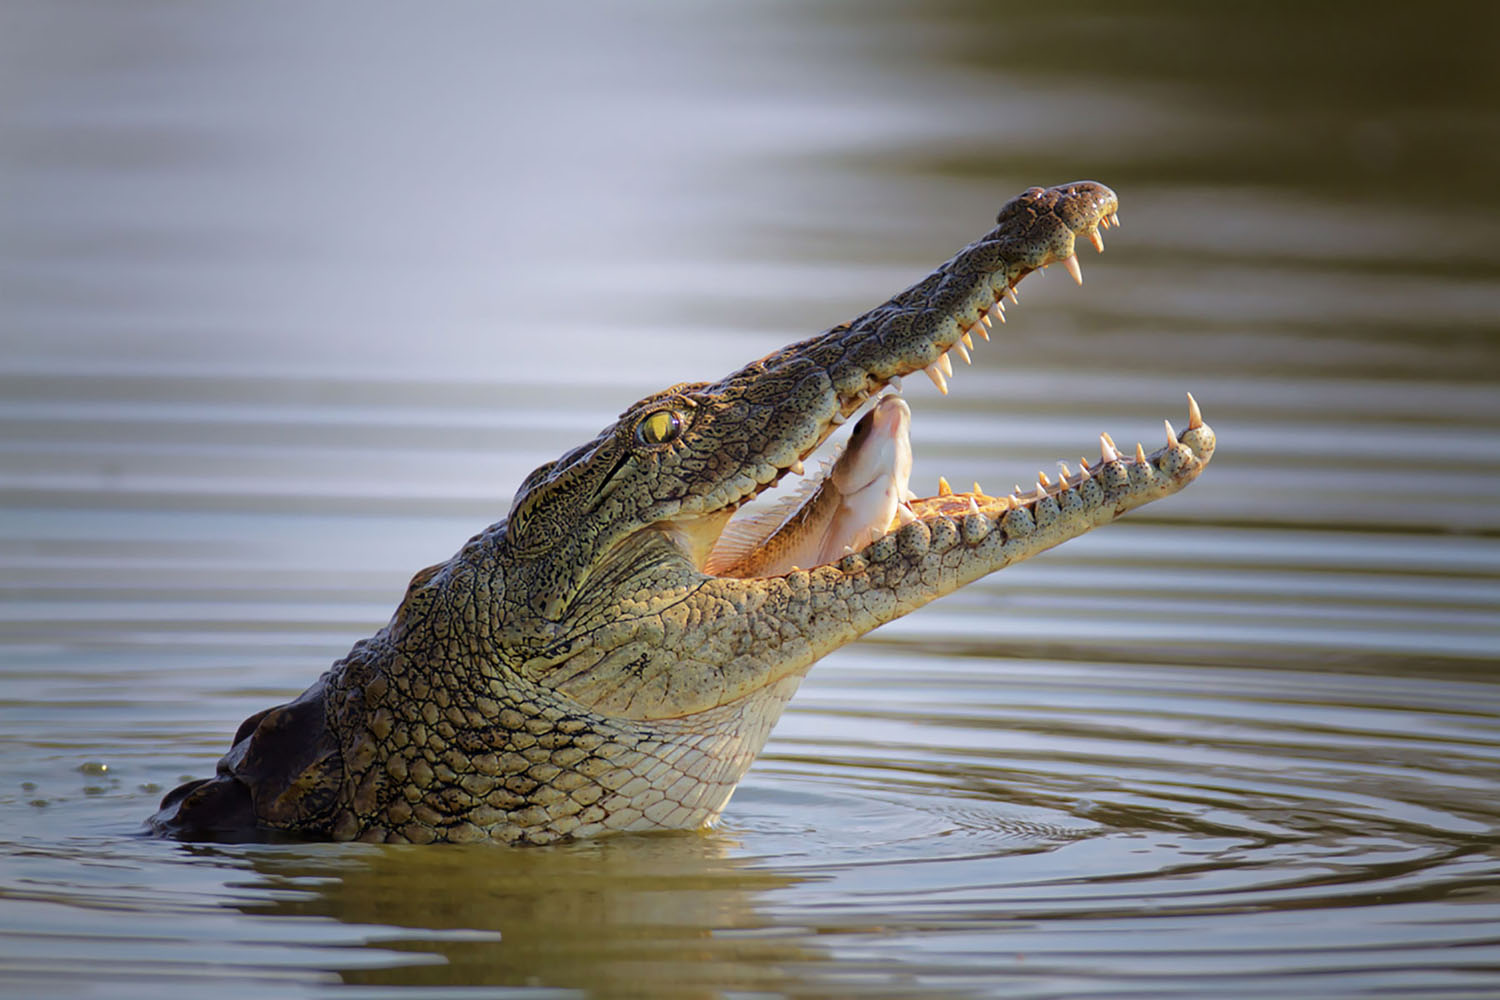 A Nile Crocodile in Africa with his mouth open, eating a fish.